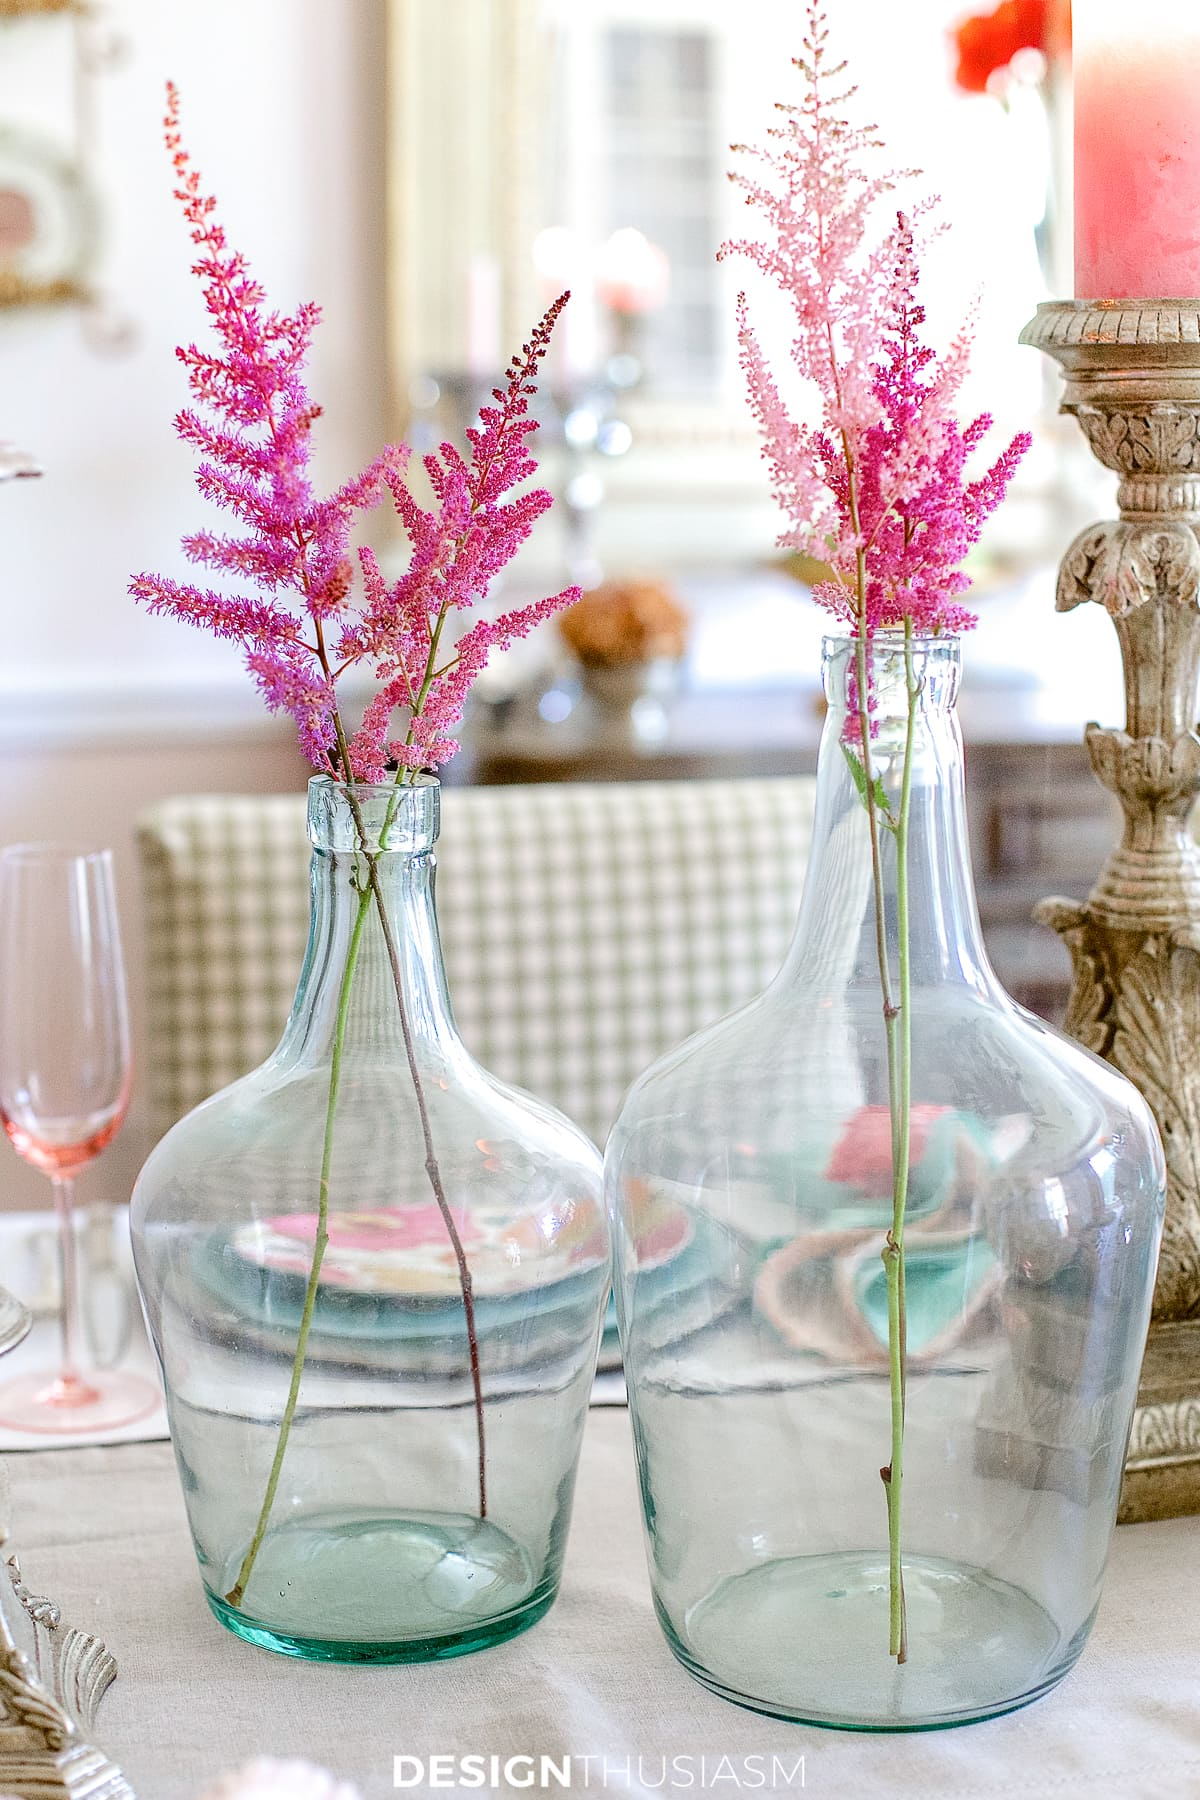 demijohns with floral